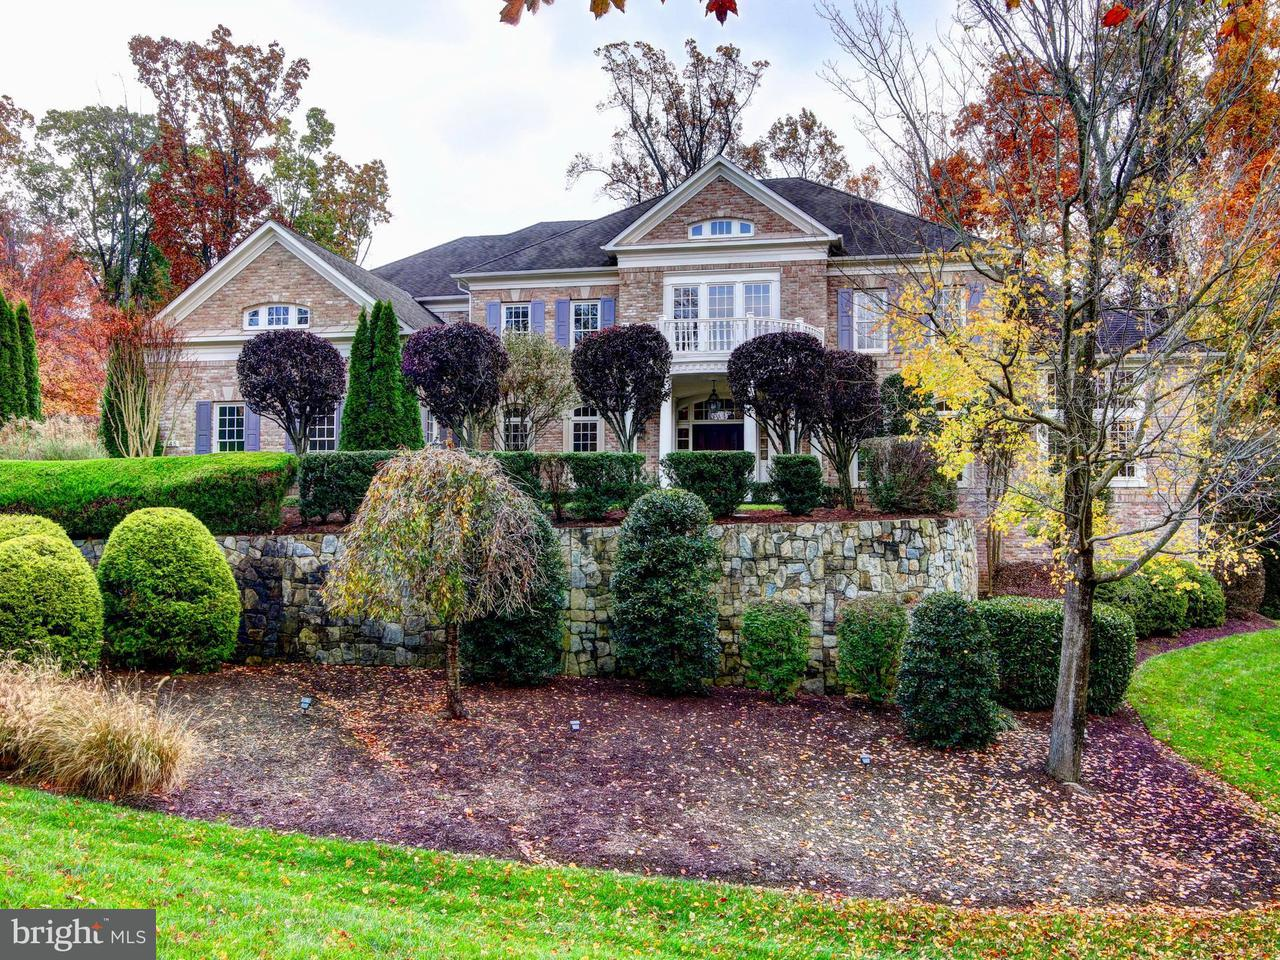 Single Family Home for Sale at 7845 MONTVALE WAY 7845 MONTVALE WAY McLean, Virginia 22102 United States